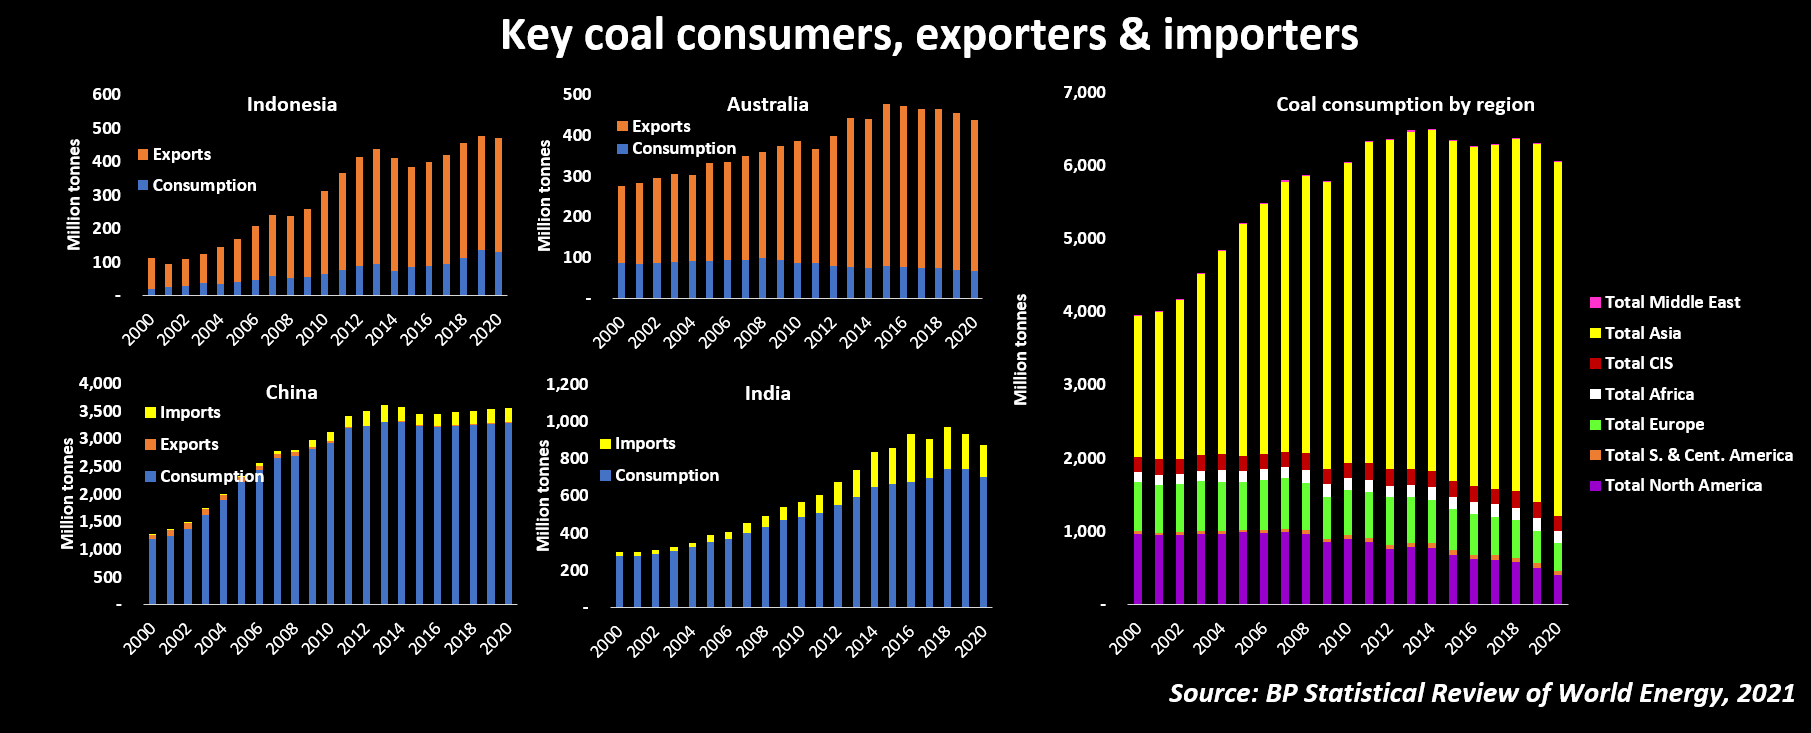 Key coal consumers, exporters and importers